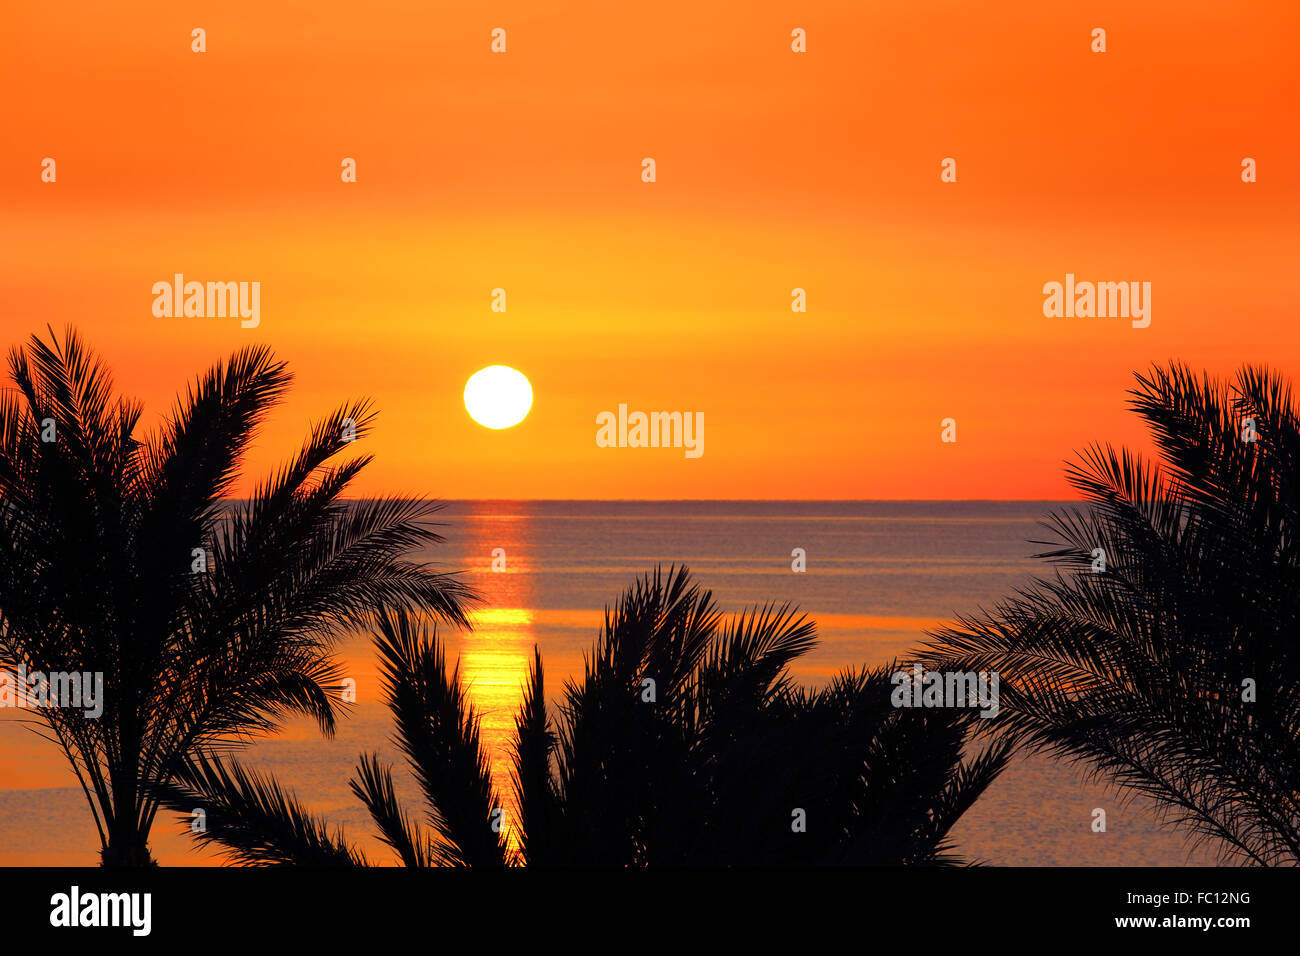 palms and sunrise over sea - Stock Image